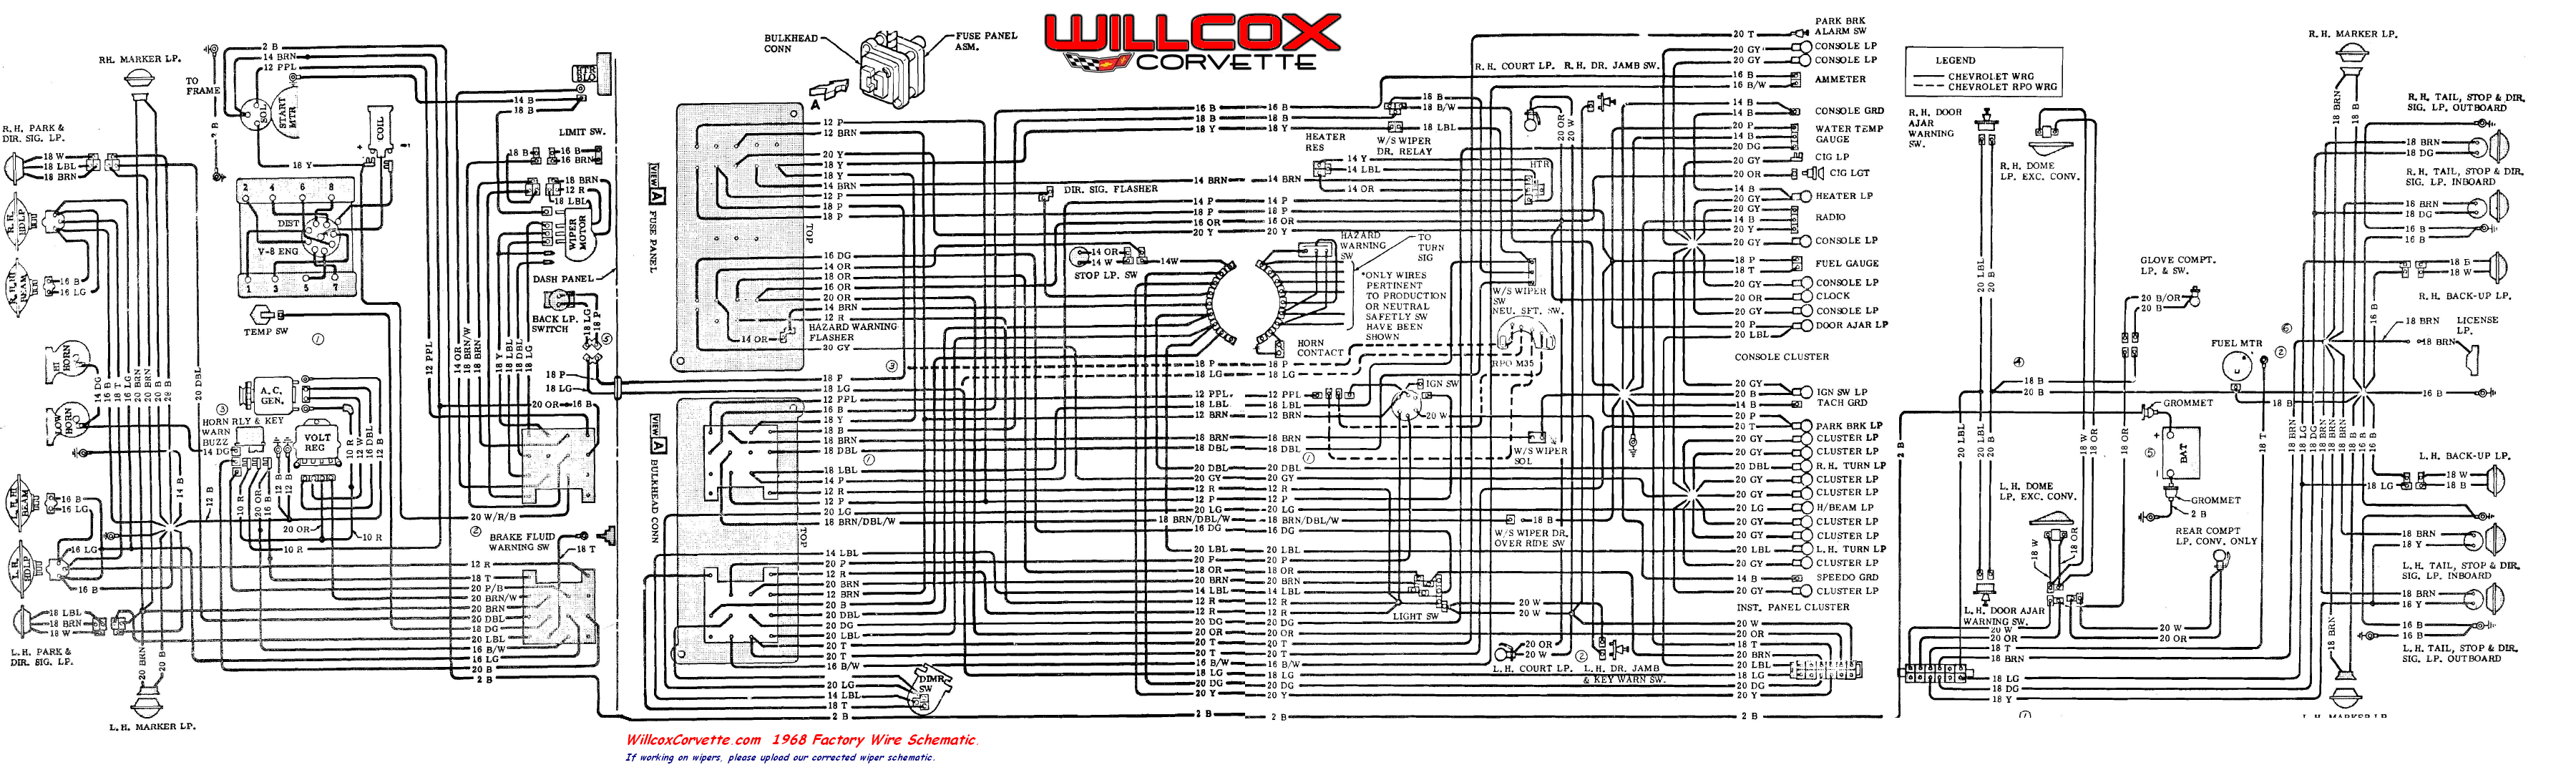 2009 corvette wiring diagram - 3 pole harley ignition switch wiring diagram  for wiring diagram schematics  wiring diagram schematics